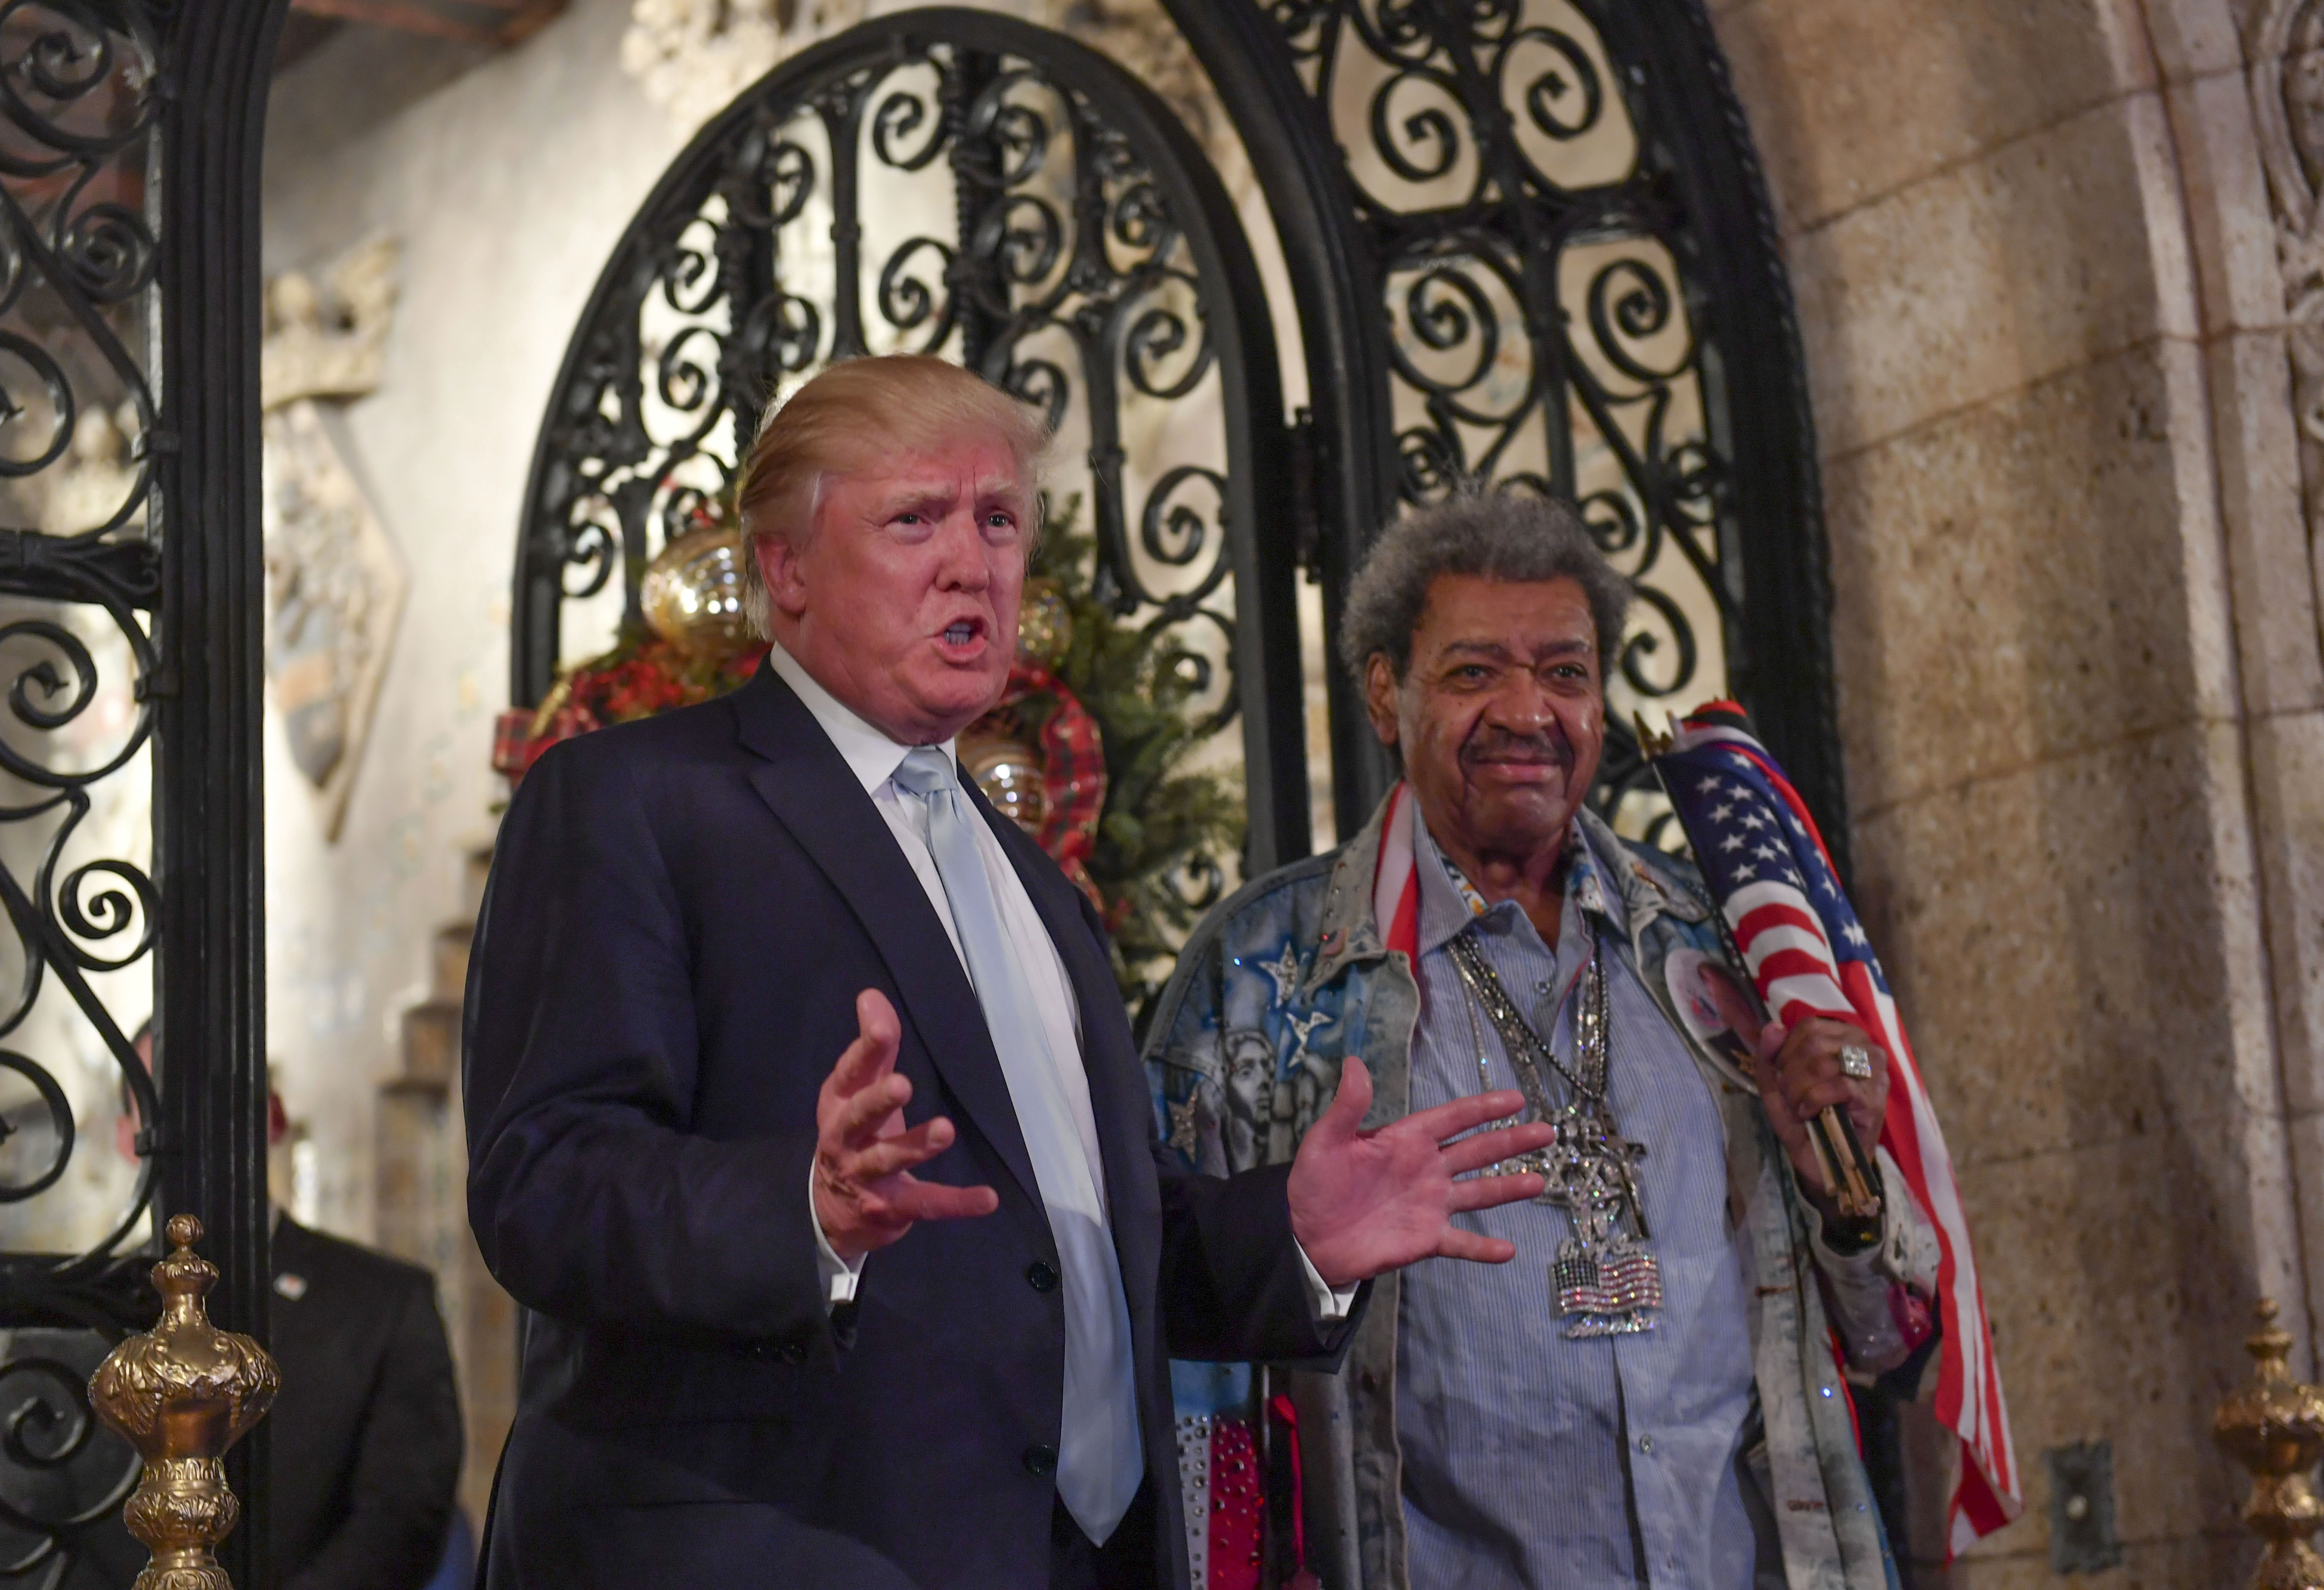 President-elect Donald Trump and fight promoter Don King address the media in December 2016 in Palm Beach, Fla. MUST CREDIT: Washington Post photo by Ricky Cariot